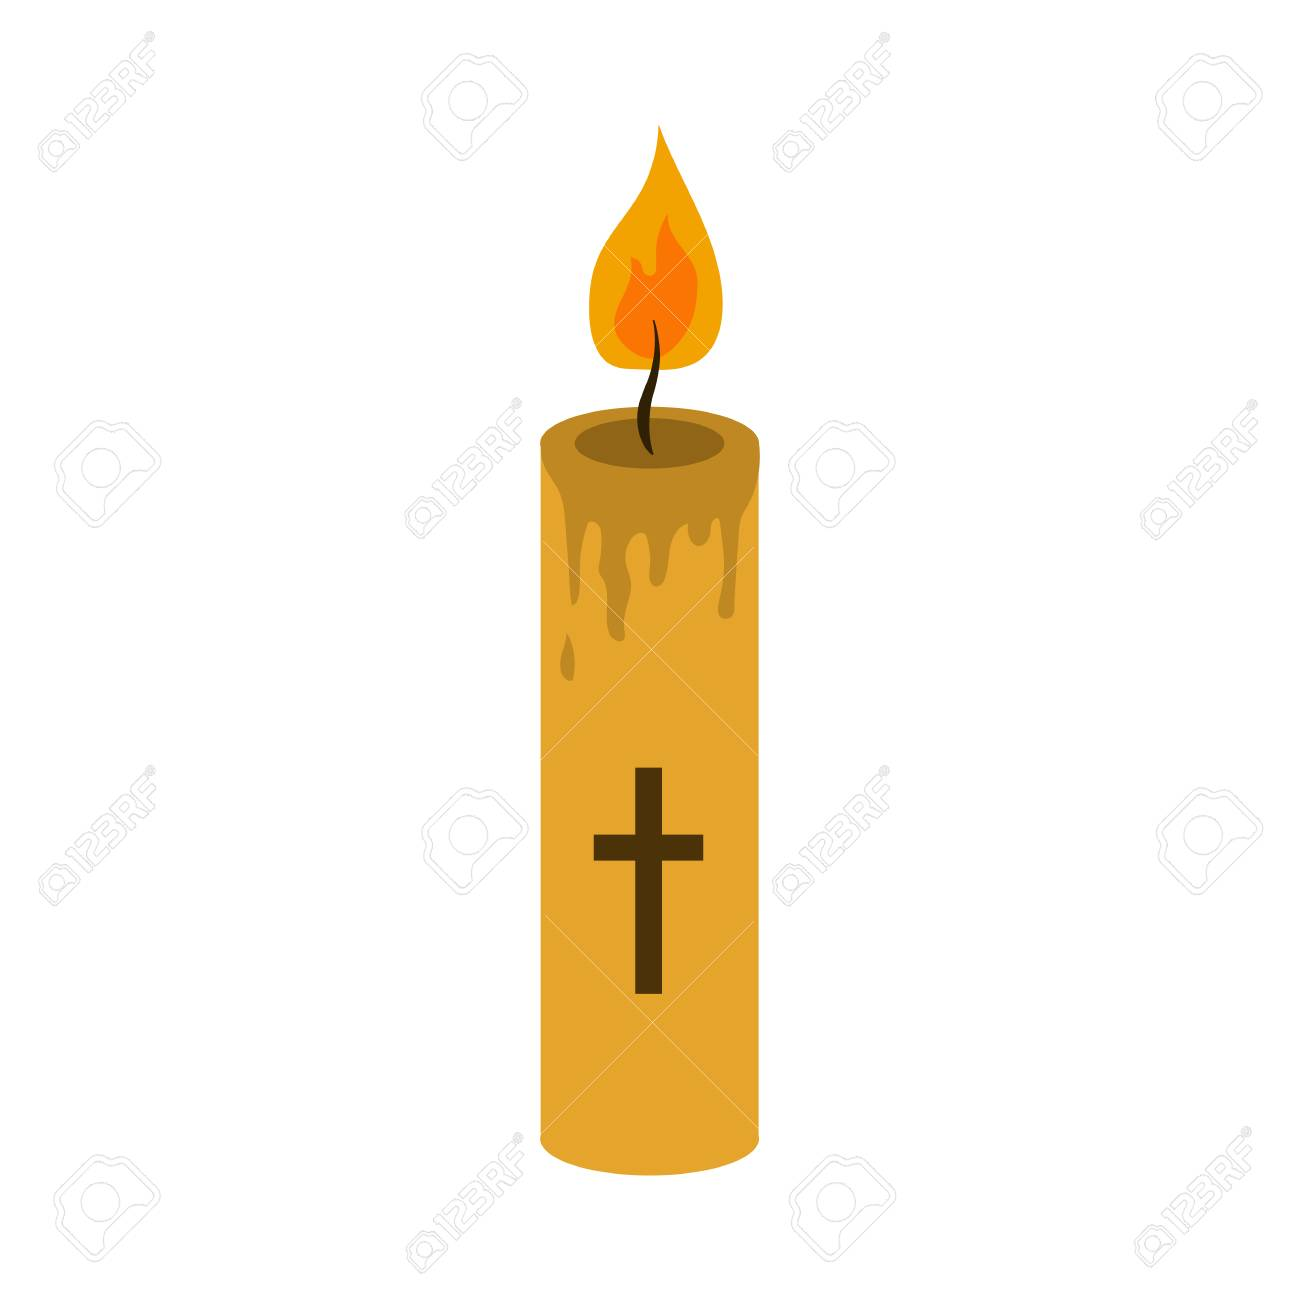 church candle flat icon.